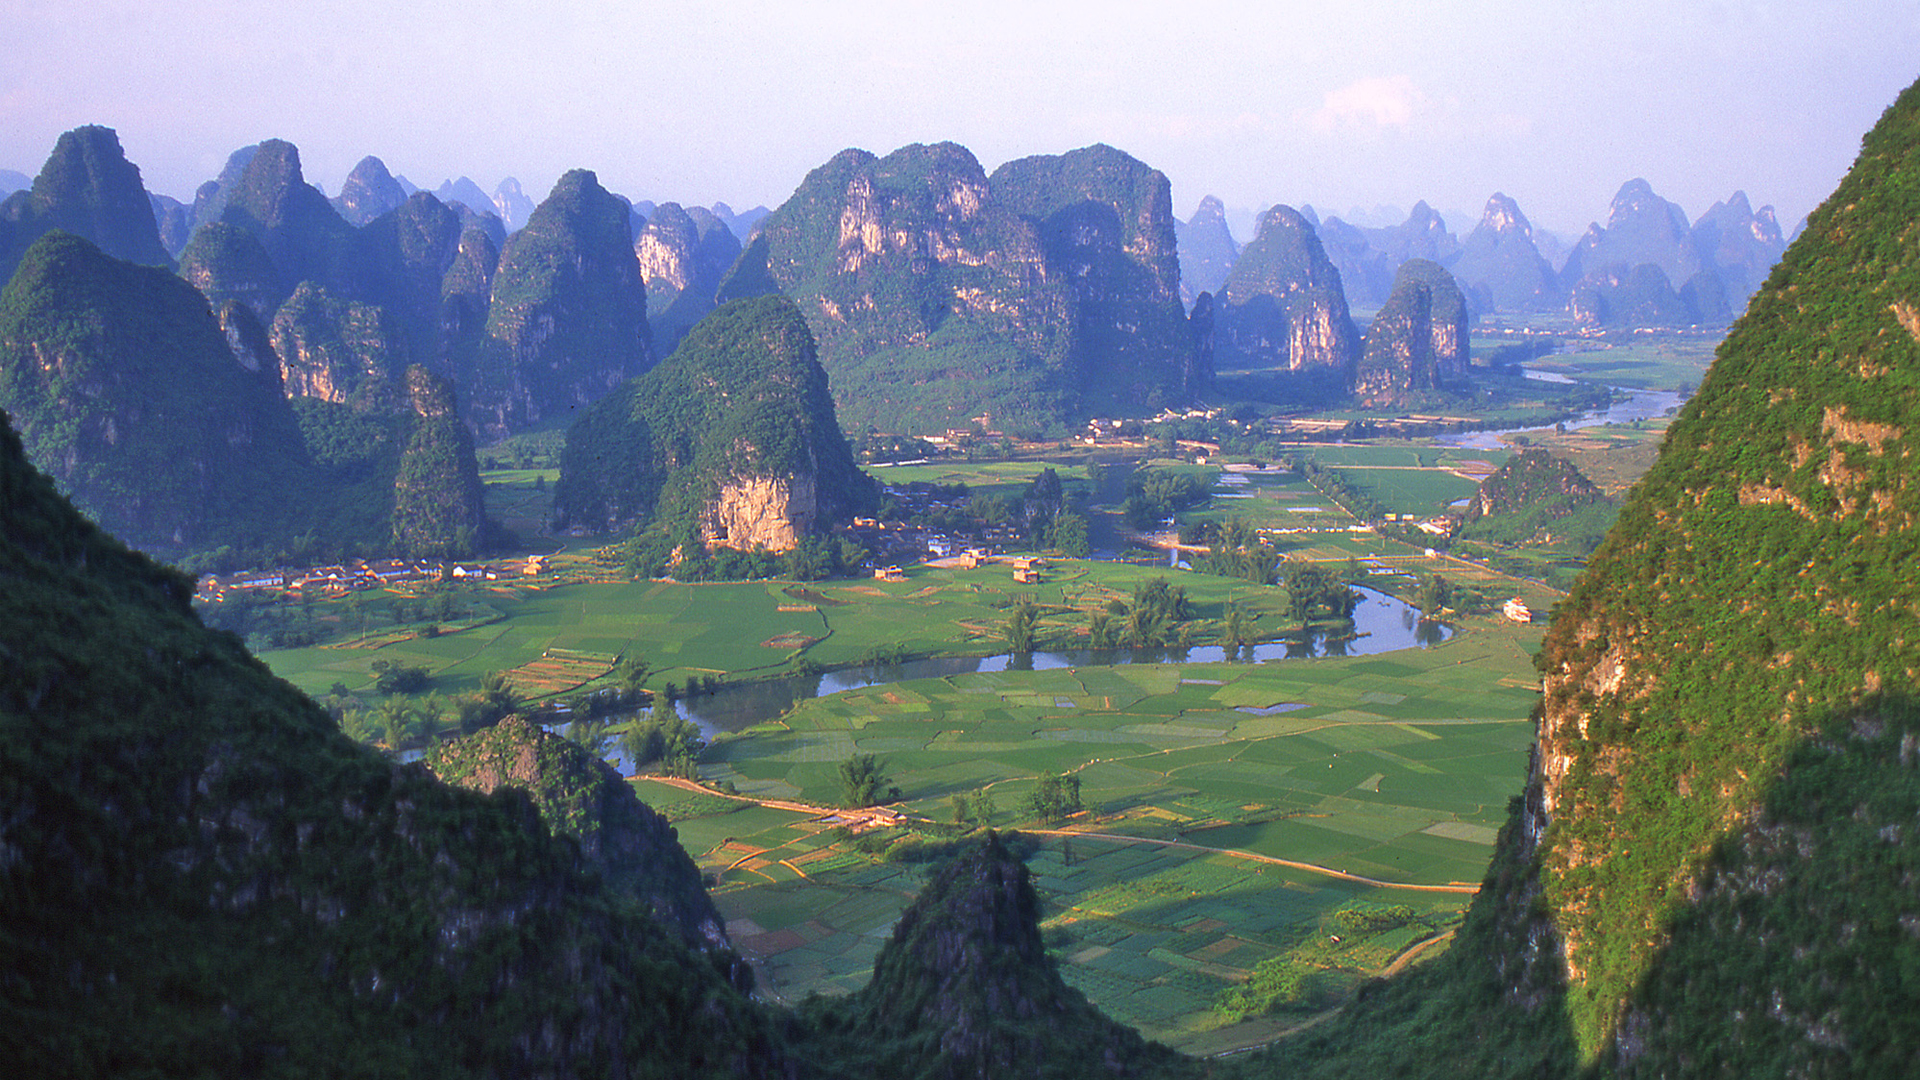 Guilin Featured Image